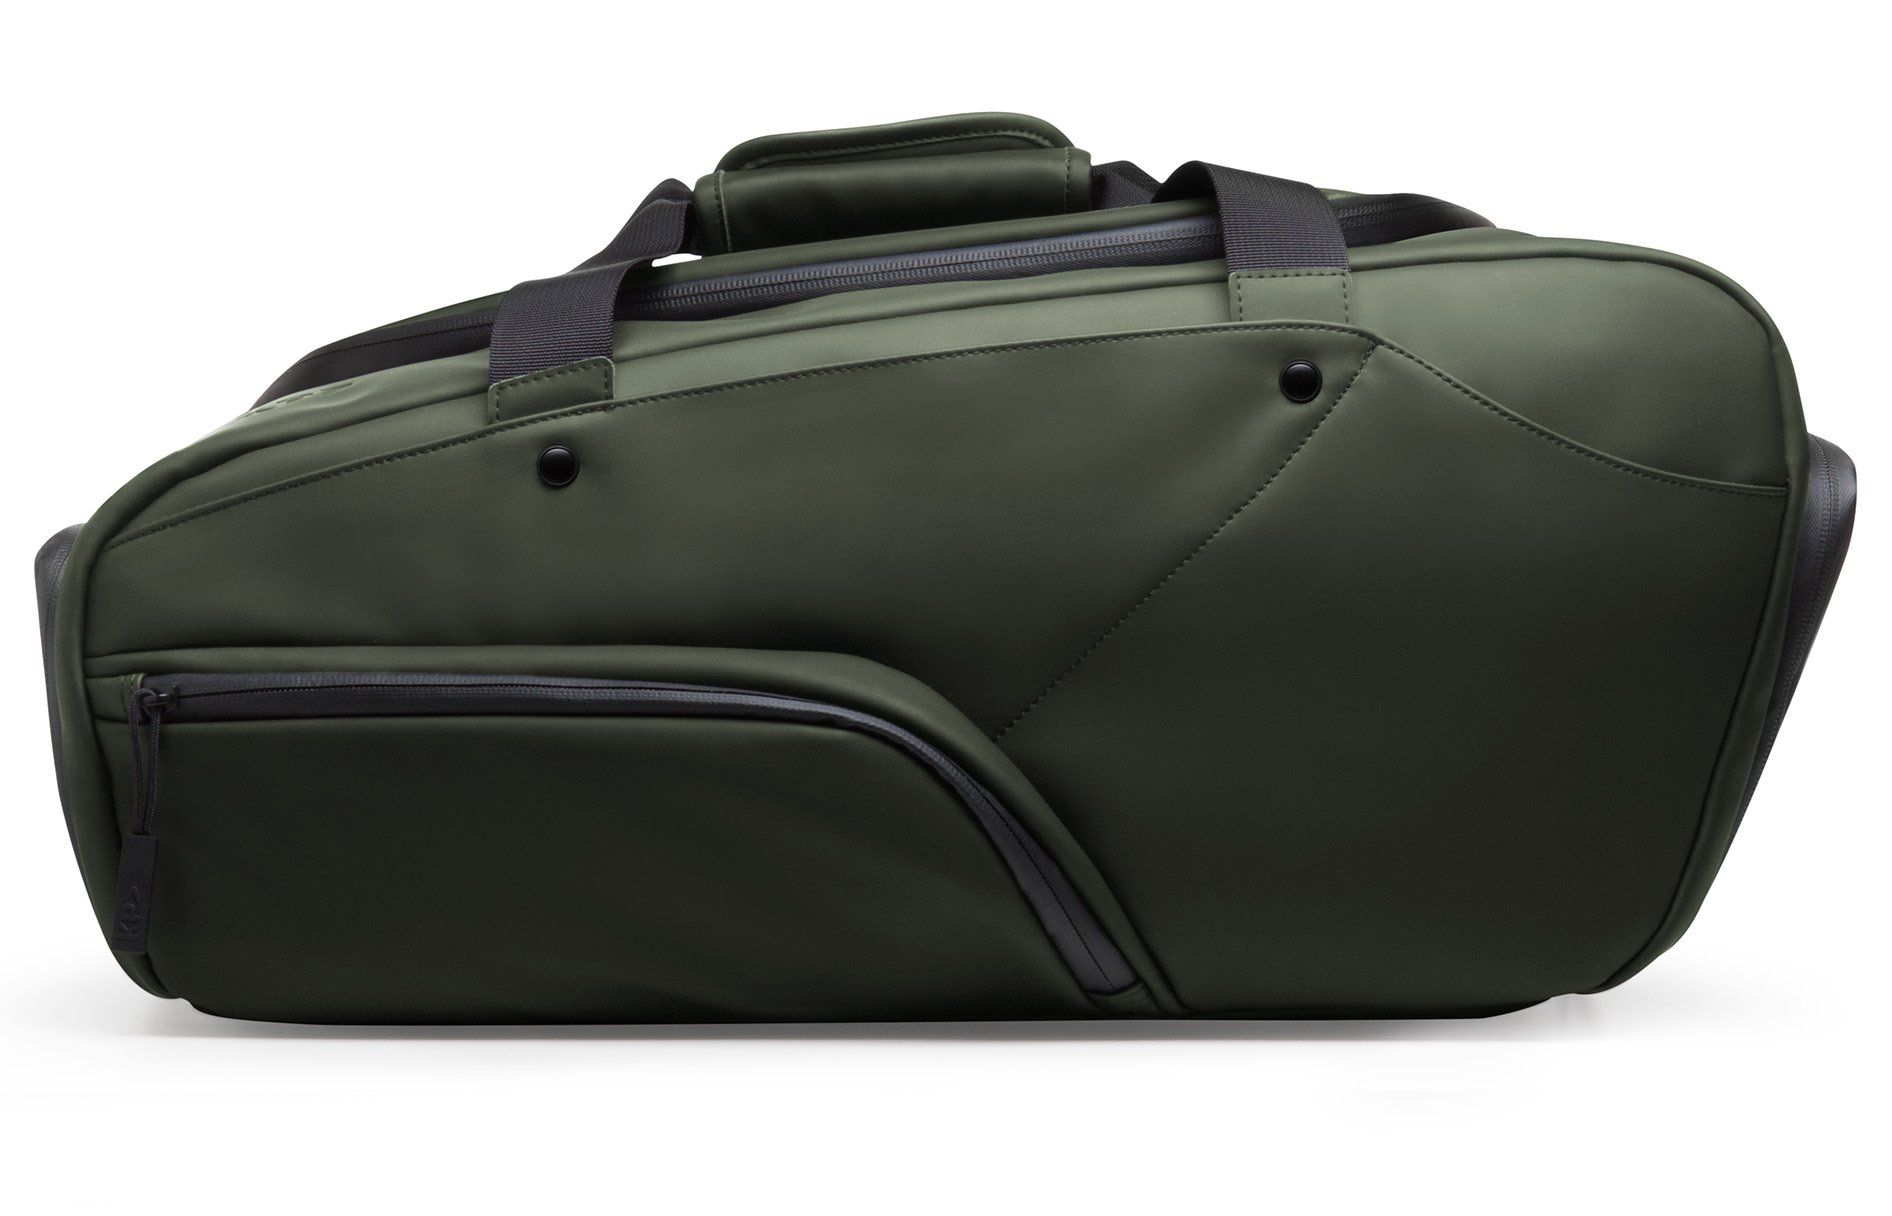 KP Duffle - The Ultimate Travel Bag (Army Green) by Keep Pursuing (Image #2)